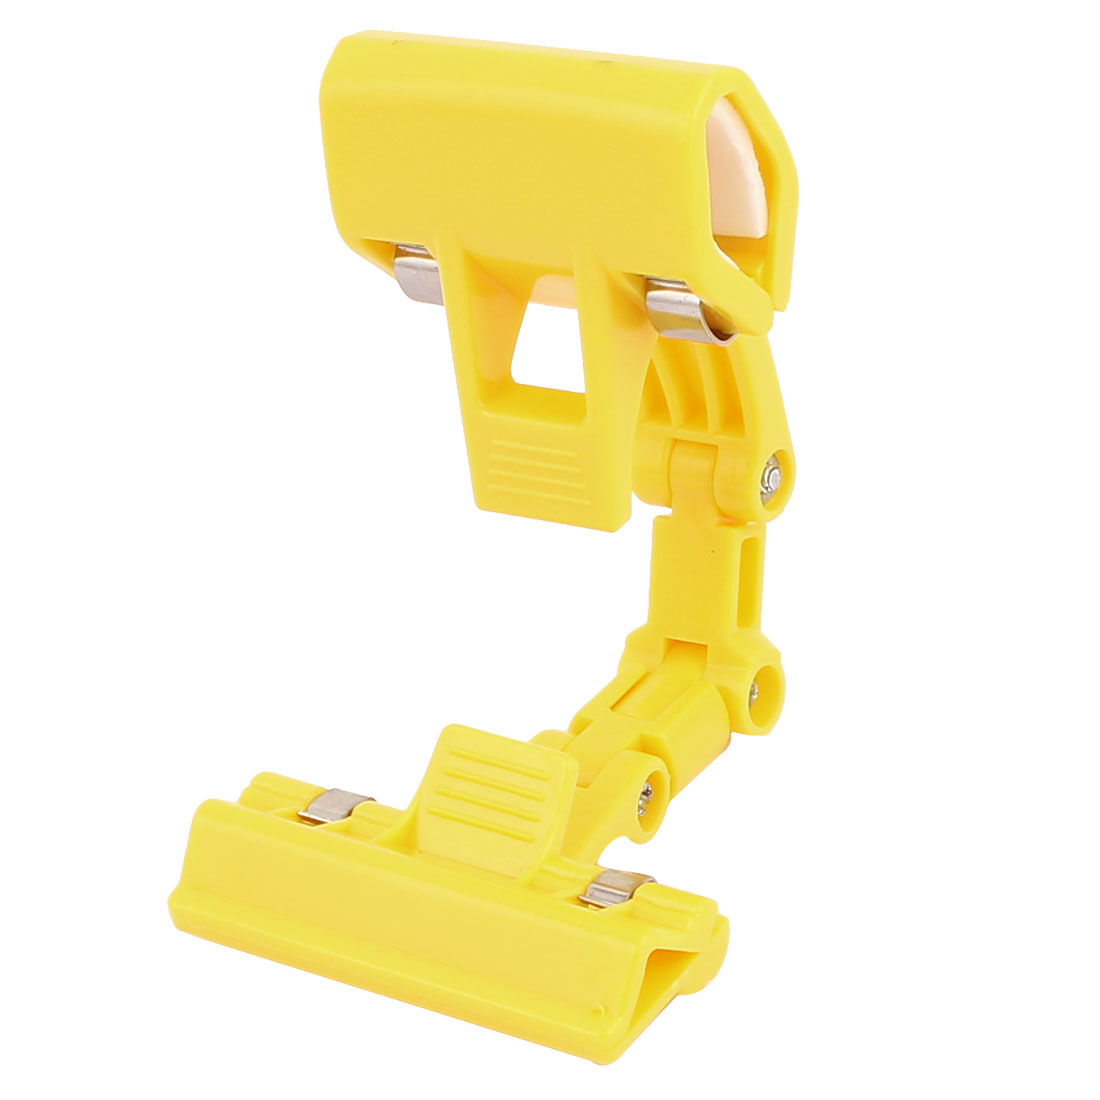 Multipurposes Advertizing Card Plastic 360 Degree Rotatable Rotating Pole Double Clamps Pop Display Holder Clip Yellow